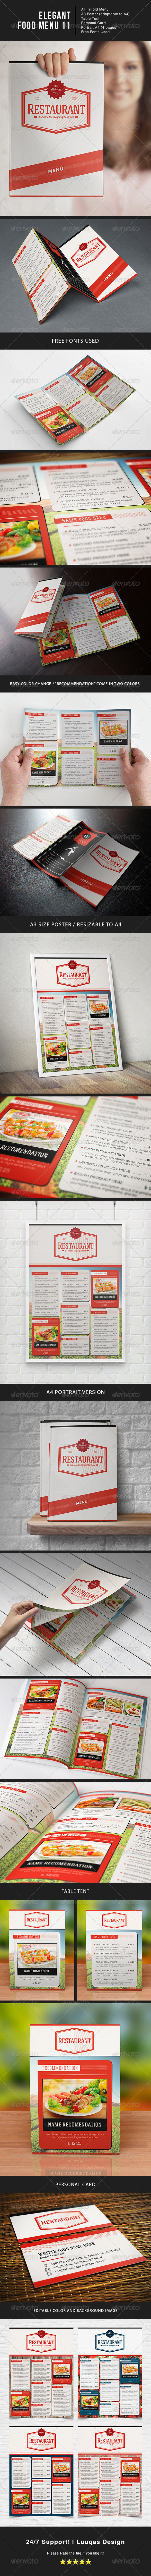 Elegant Food Menu 11